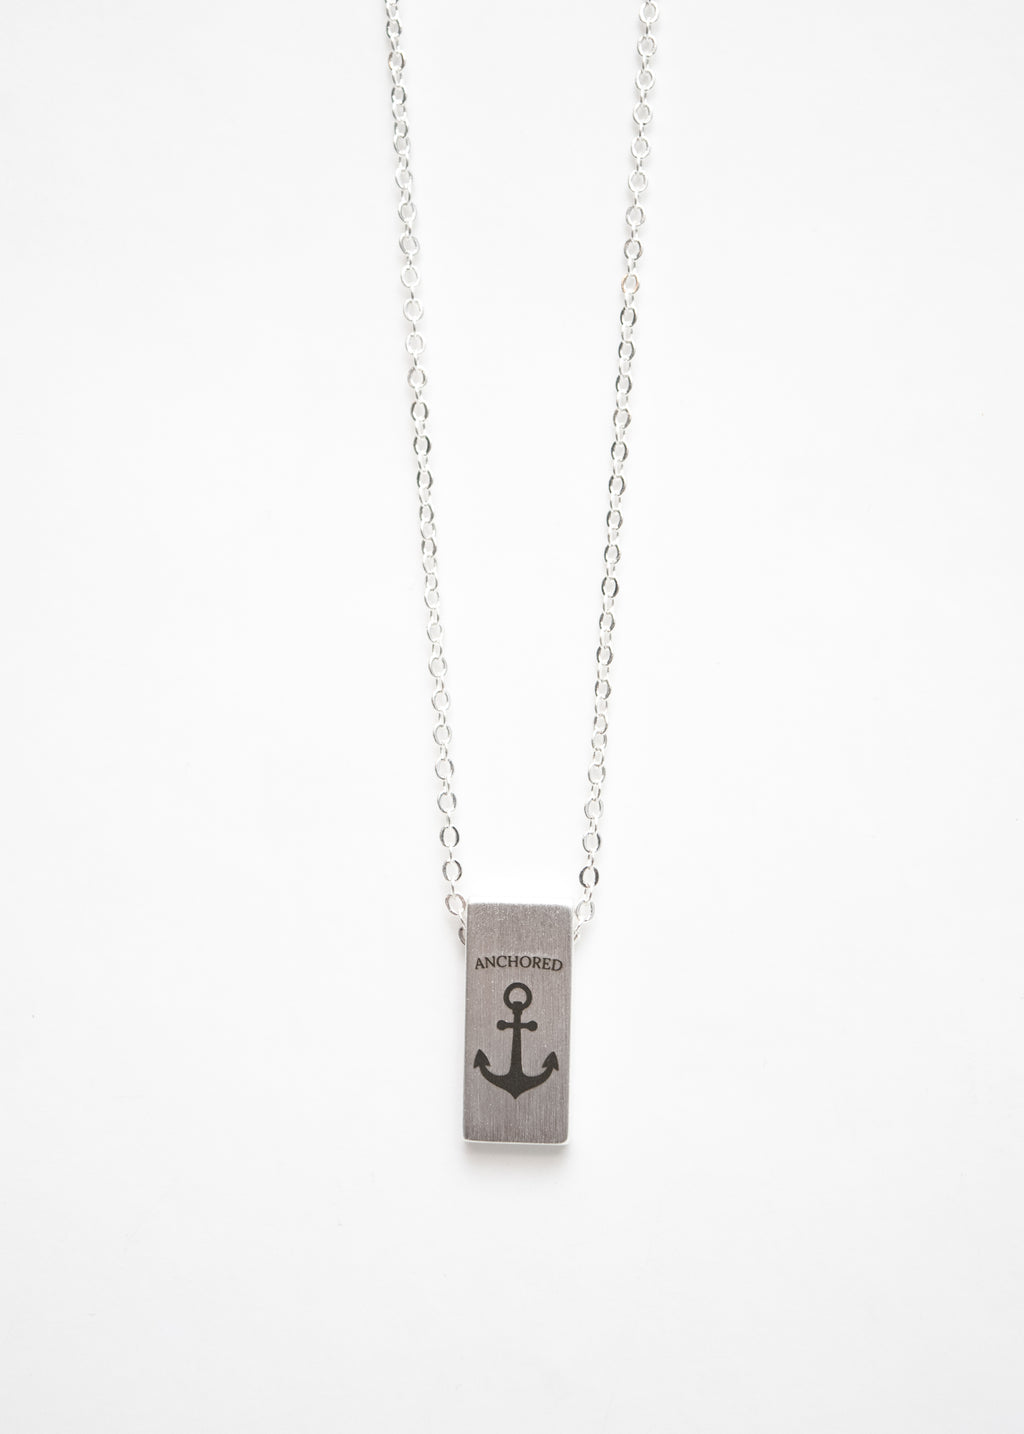 Beck & Boosh Anchored Necklace Silver Stamped Anchor Pendant Silver Plated